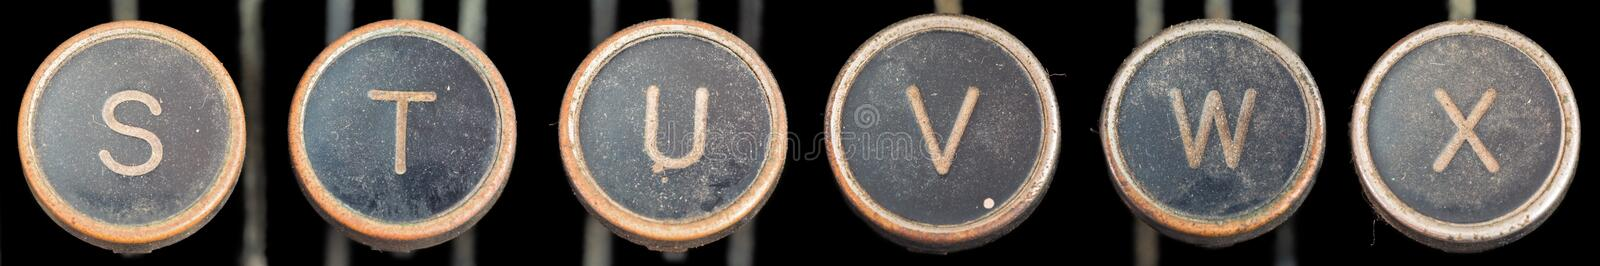 Old Typewriter Keys S-X. Covered in grit and grime - letters S,T,U,V,W,X - six images merged stock photos